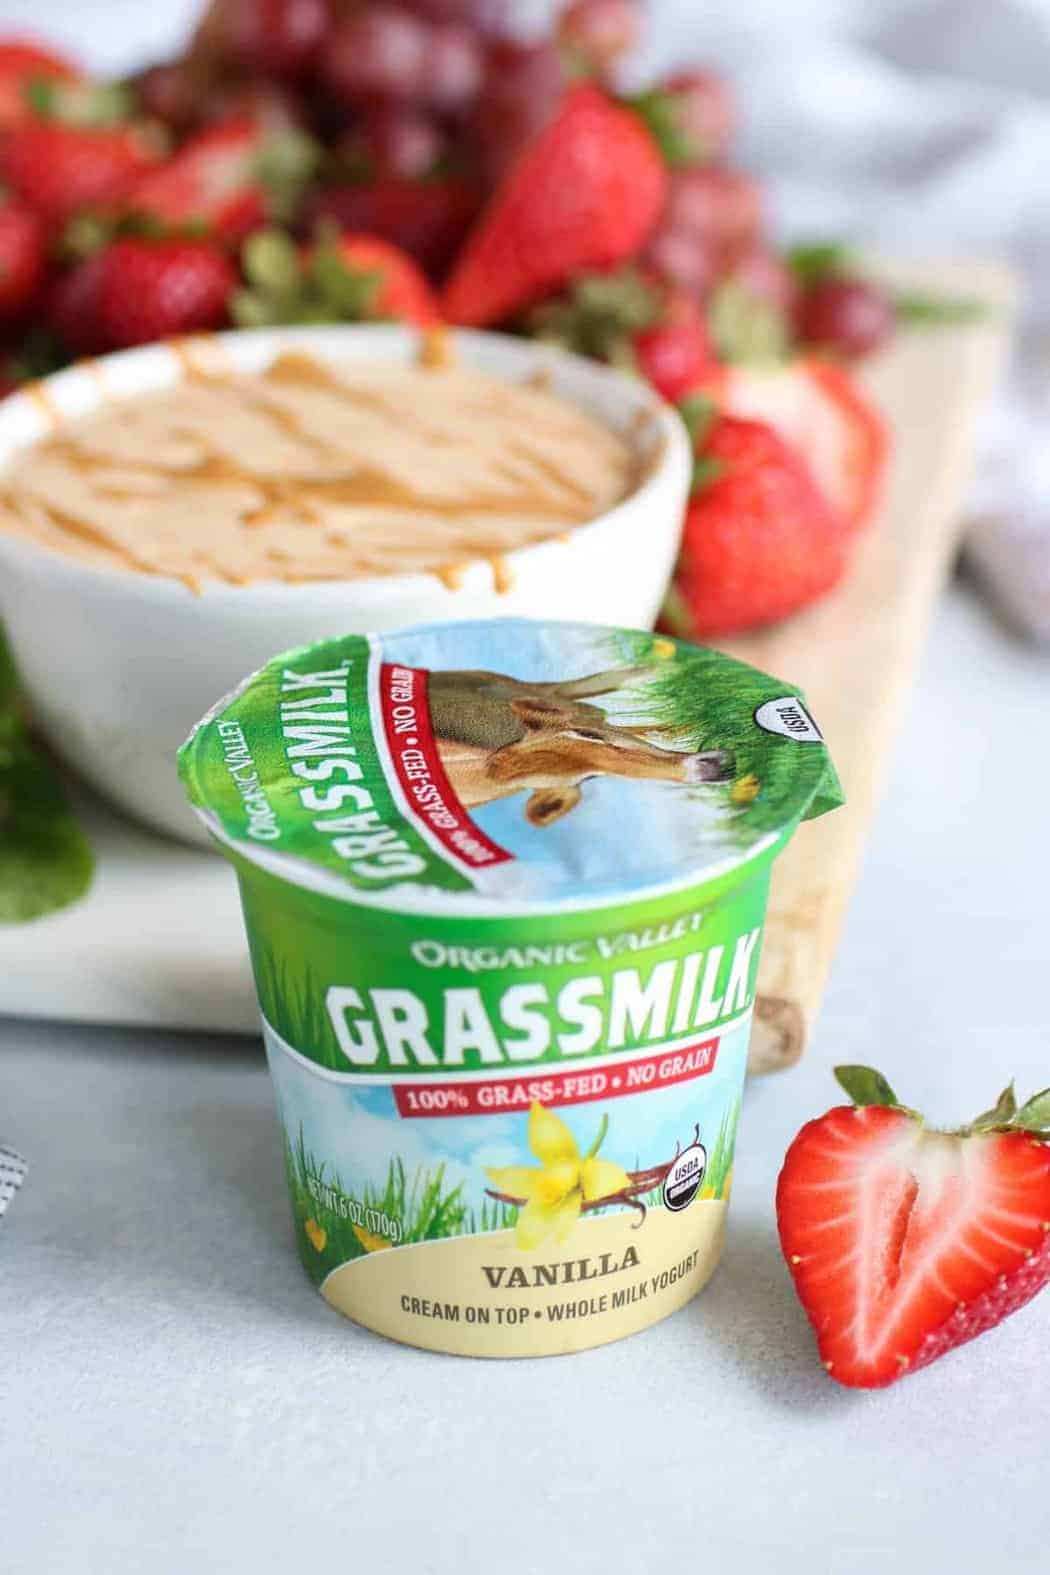 Organic Valley Grassmilk Vanilla flavored yogurt